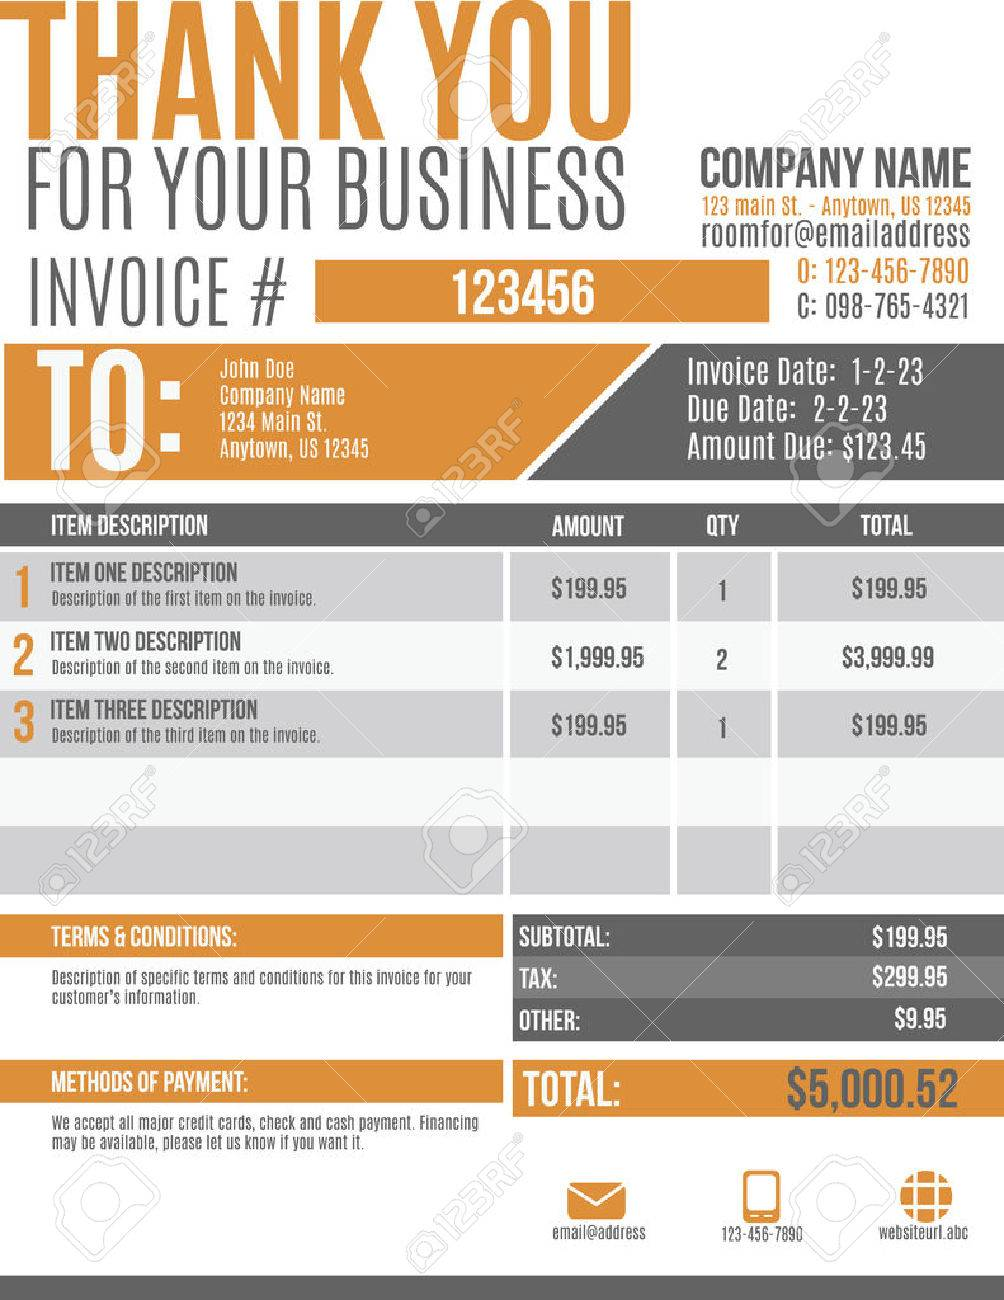 Fun And Modern Customizable Invoice Template Design Royalty Free - Design invoice template